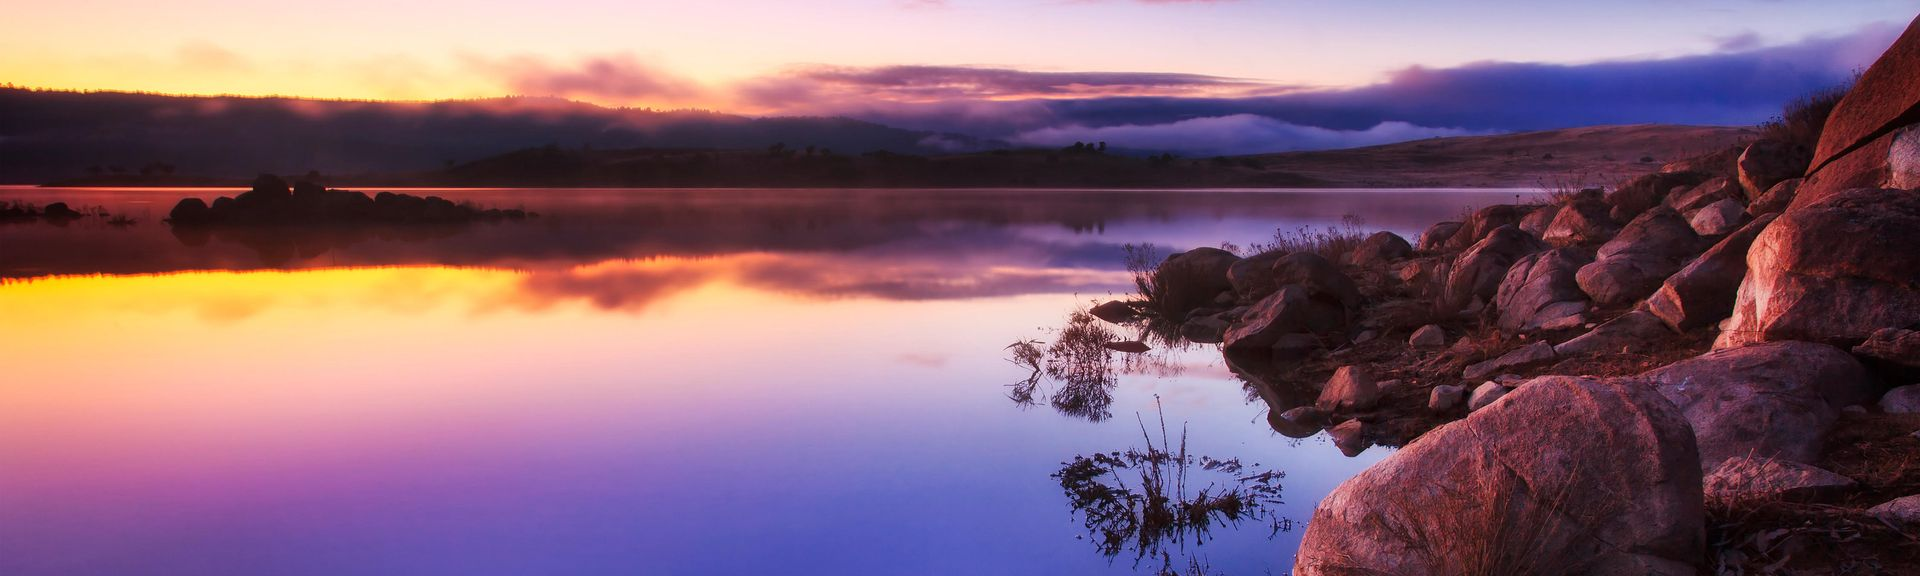 Jindabyne, New South Wales, Australia